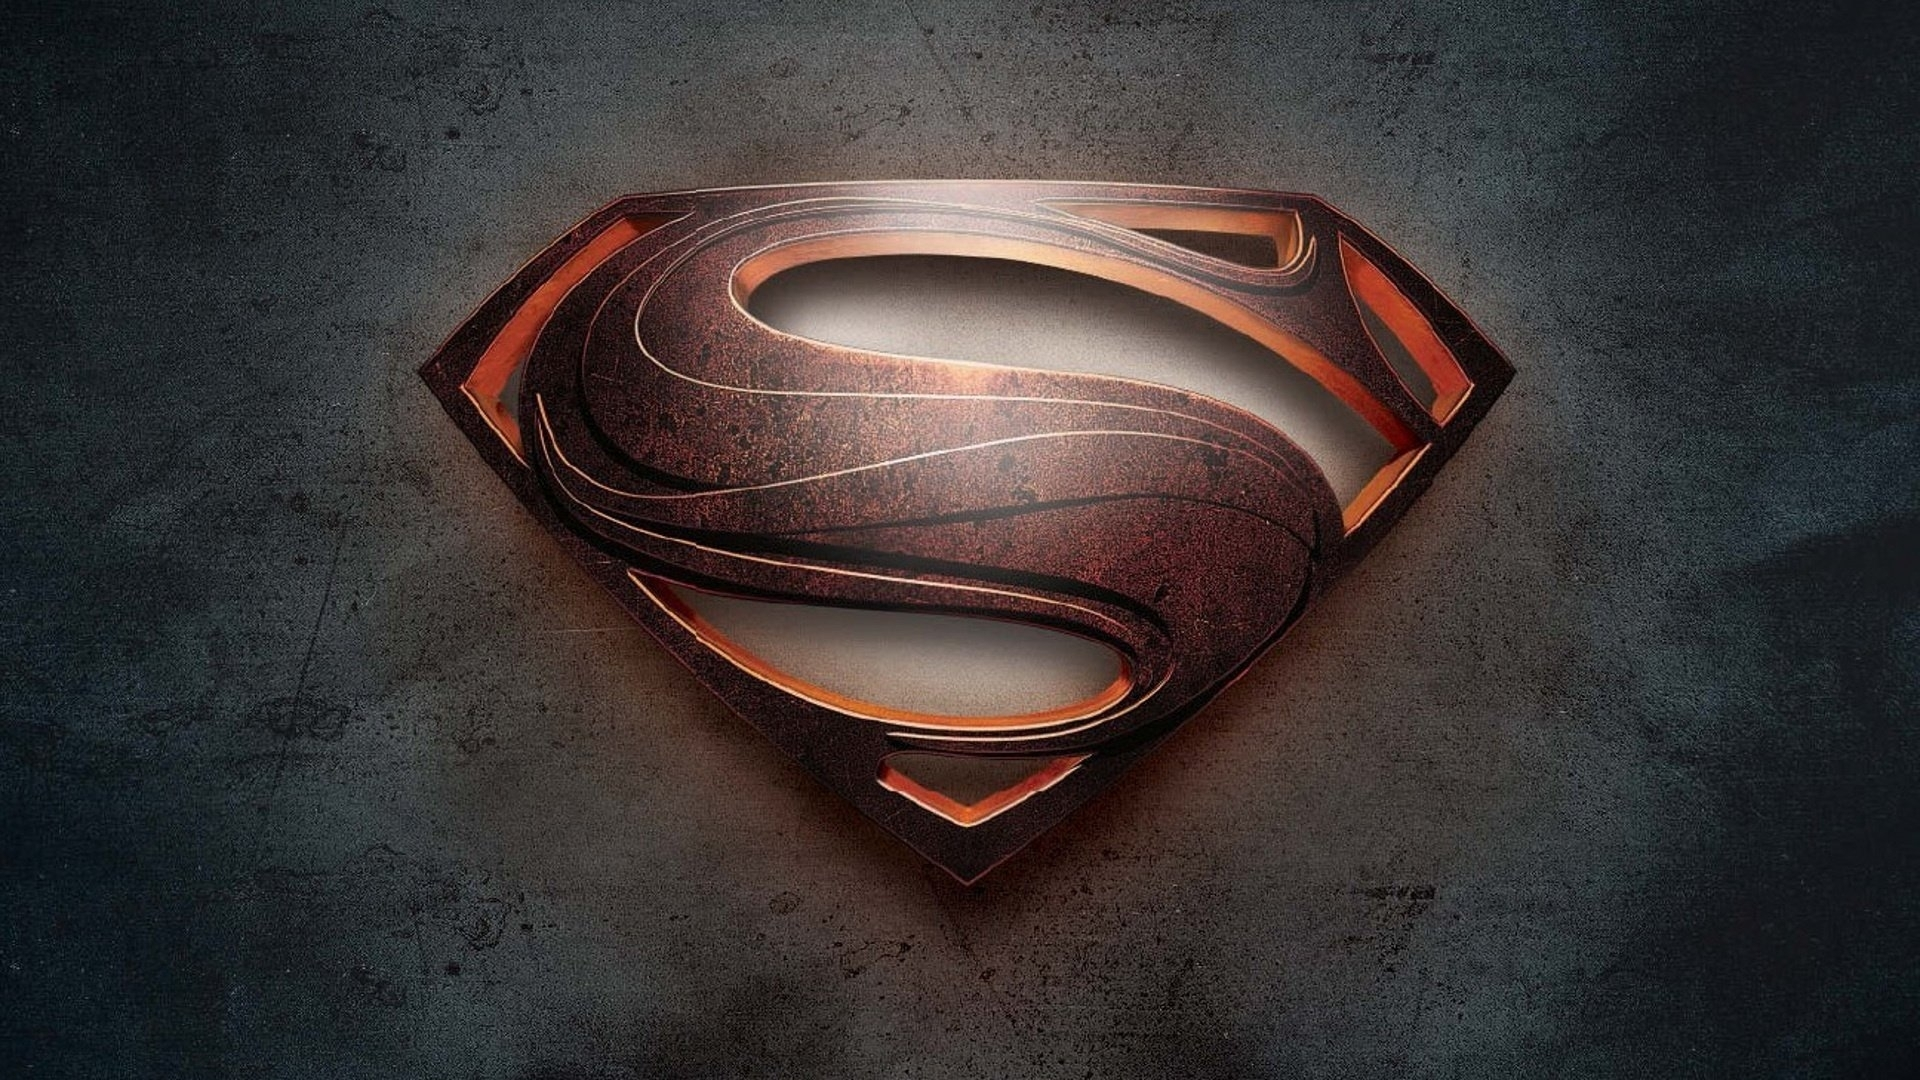 93 man of steel hd wallpapers   background images - wallpaper abyss